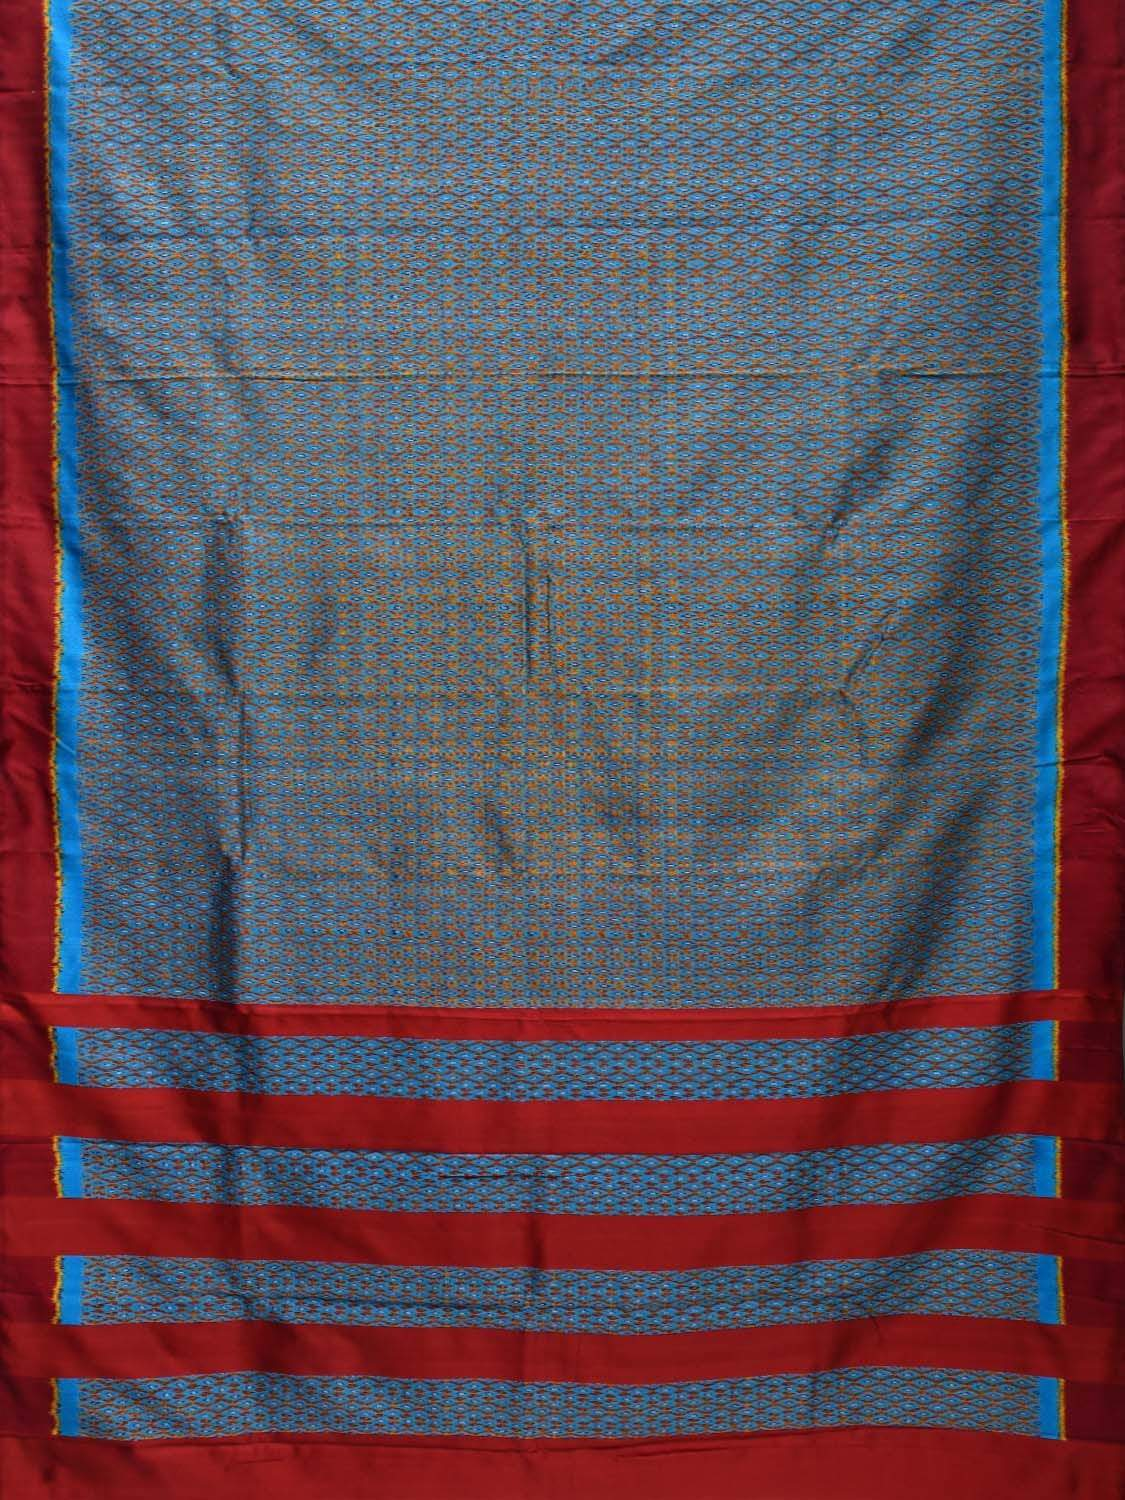 Blue and Maroon Pochampally Ikat Silk Handloom Saree with Twill Design i0556